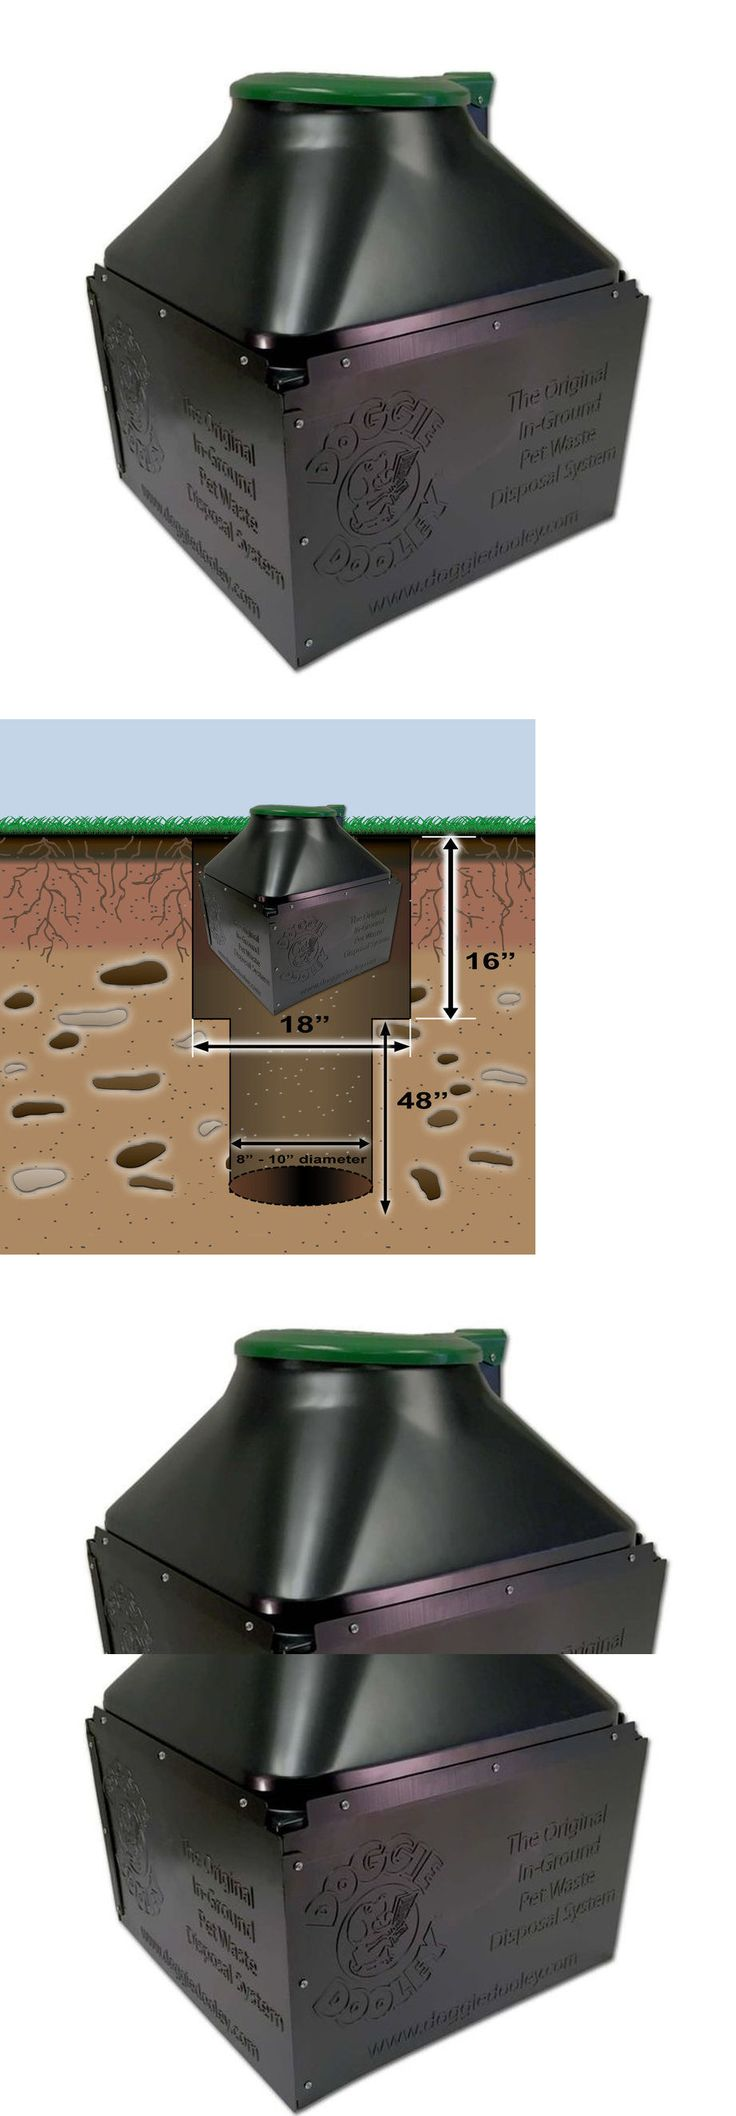 Pooper Scoopers and Bags 116392: Dog Waste Disposal System Pets Outside Septic Tank Black Plastic Green Lid Yard BUY IT NOW ONLY: $79.99